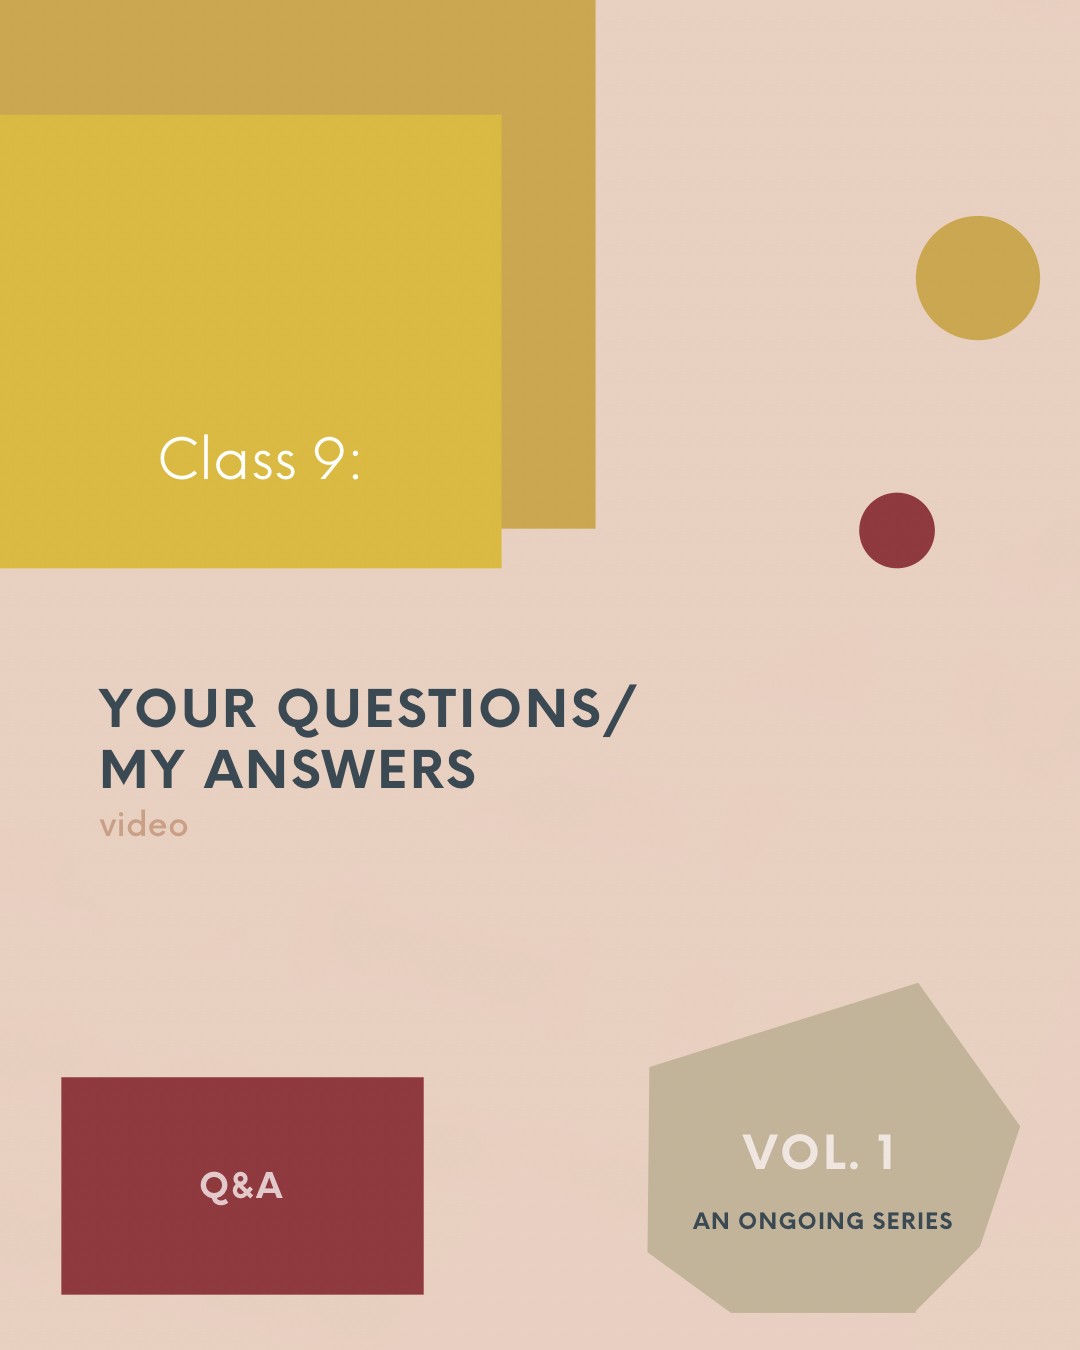 Subject No. 9 Q&A Vol. 1 - Q&aBy popular demand we're doing a Q&A!Whoop! Whoop!You asked, and it's my honor to oblige. I'm looking forward to answering your questions.Let's get as real, raw, and open as you all wanna get! Ask whatever you'd like guidance, advice, or tips on.Share what's on your heart, spirit, and mind.This will be a free-structured class on video.